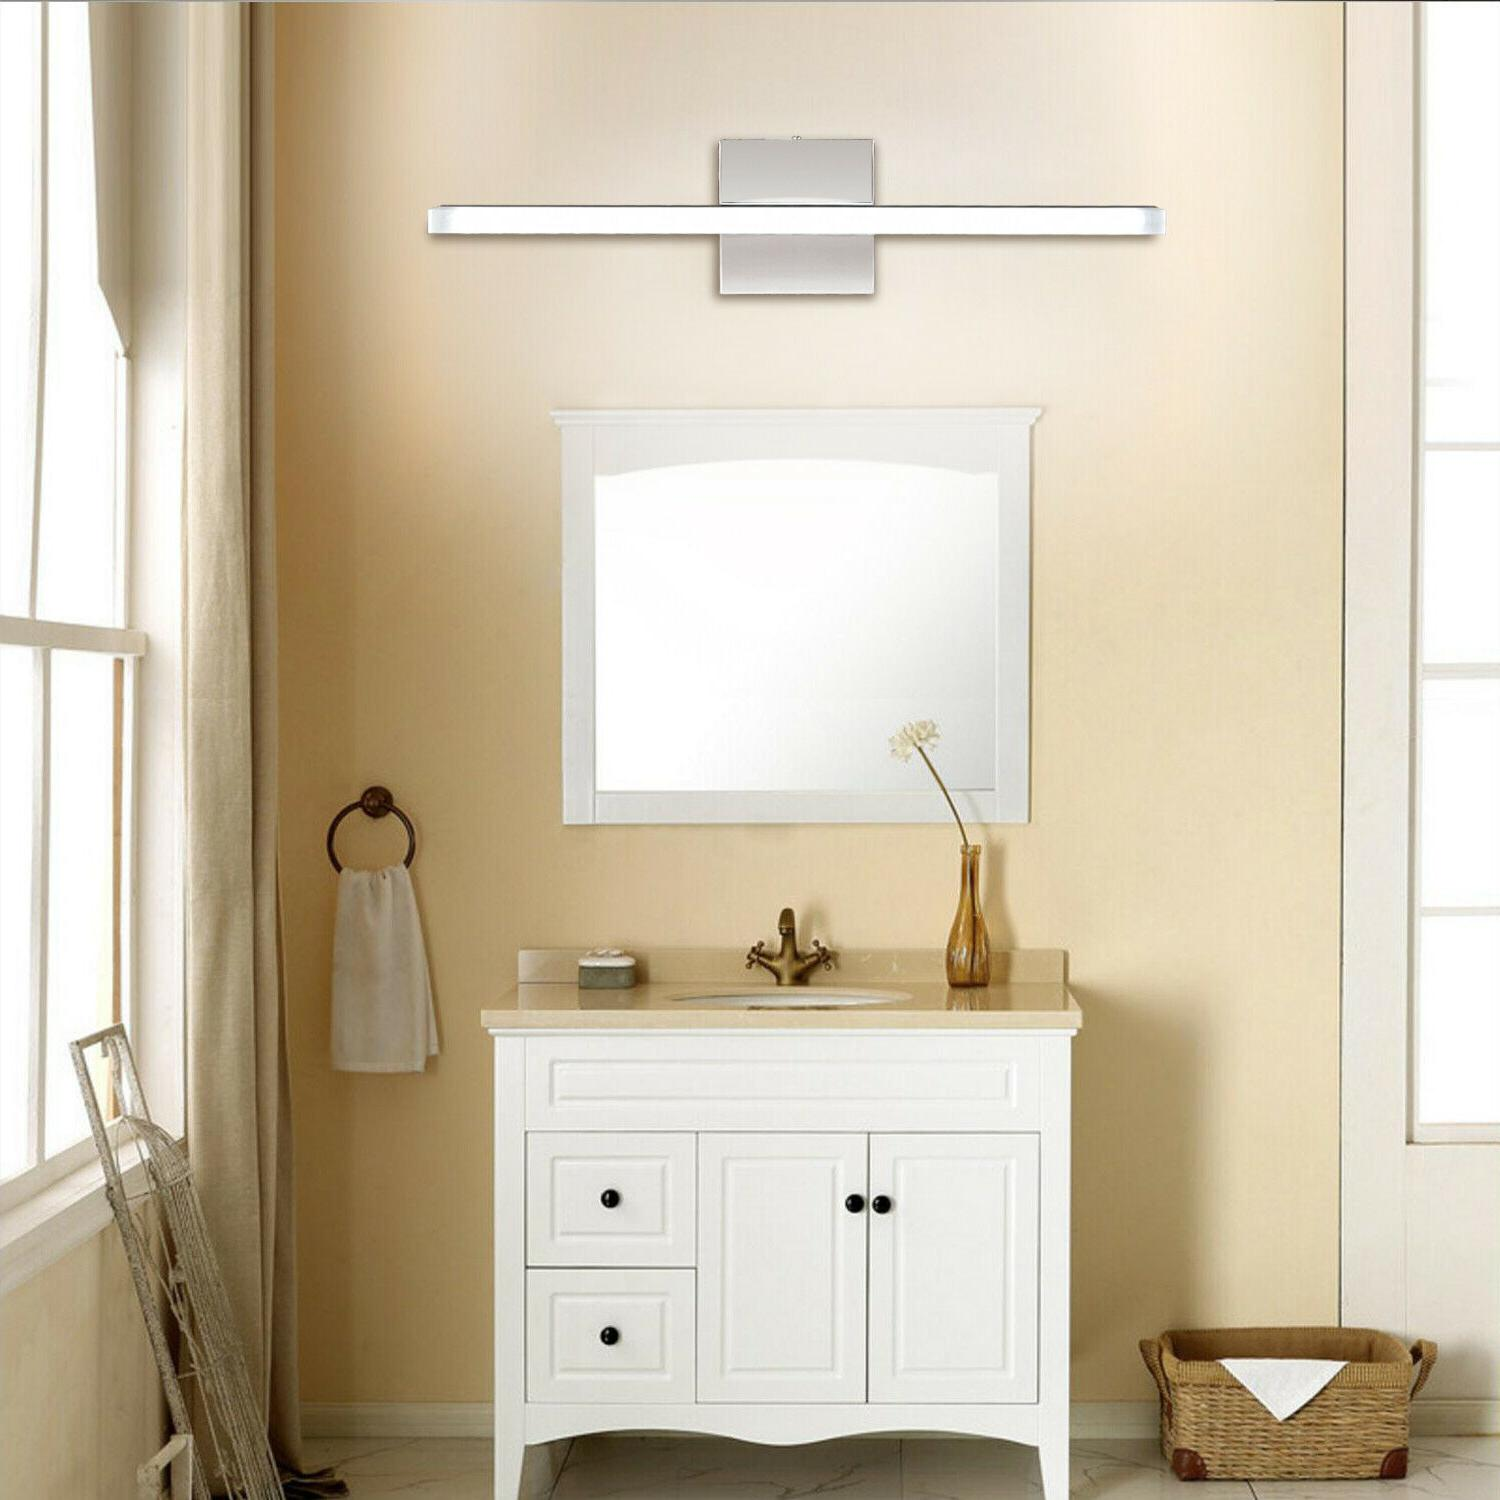 Stainless Light Wall Lamp Front Mirror Fixture White